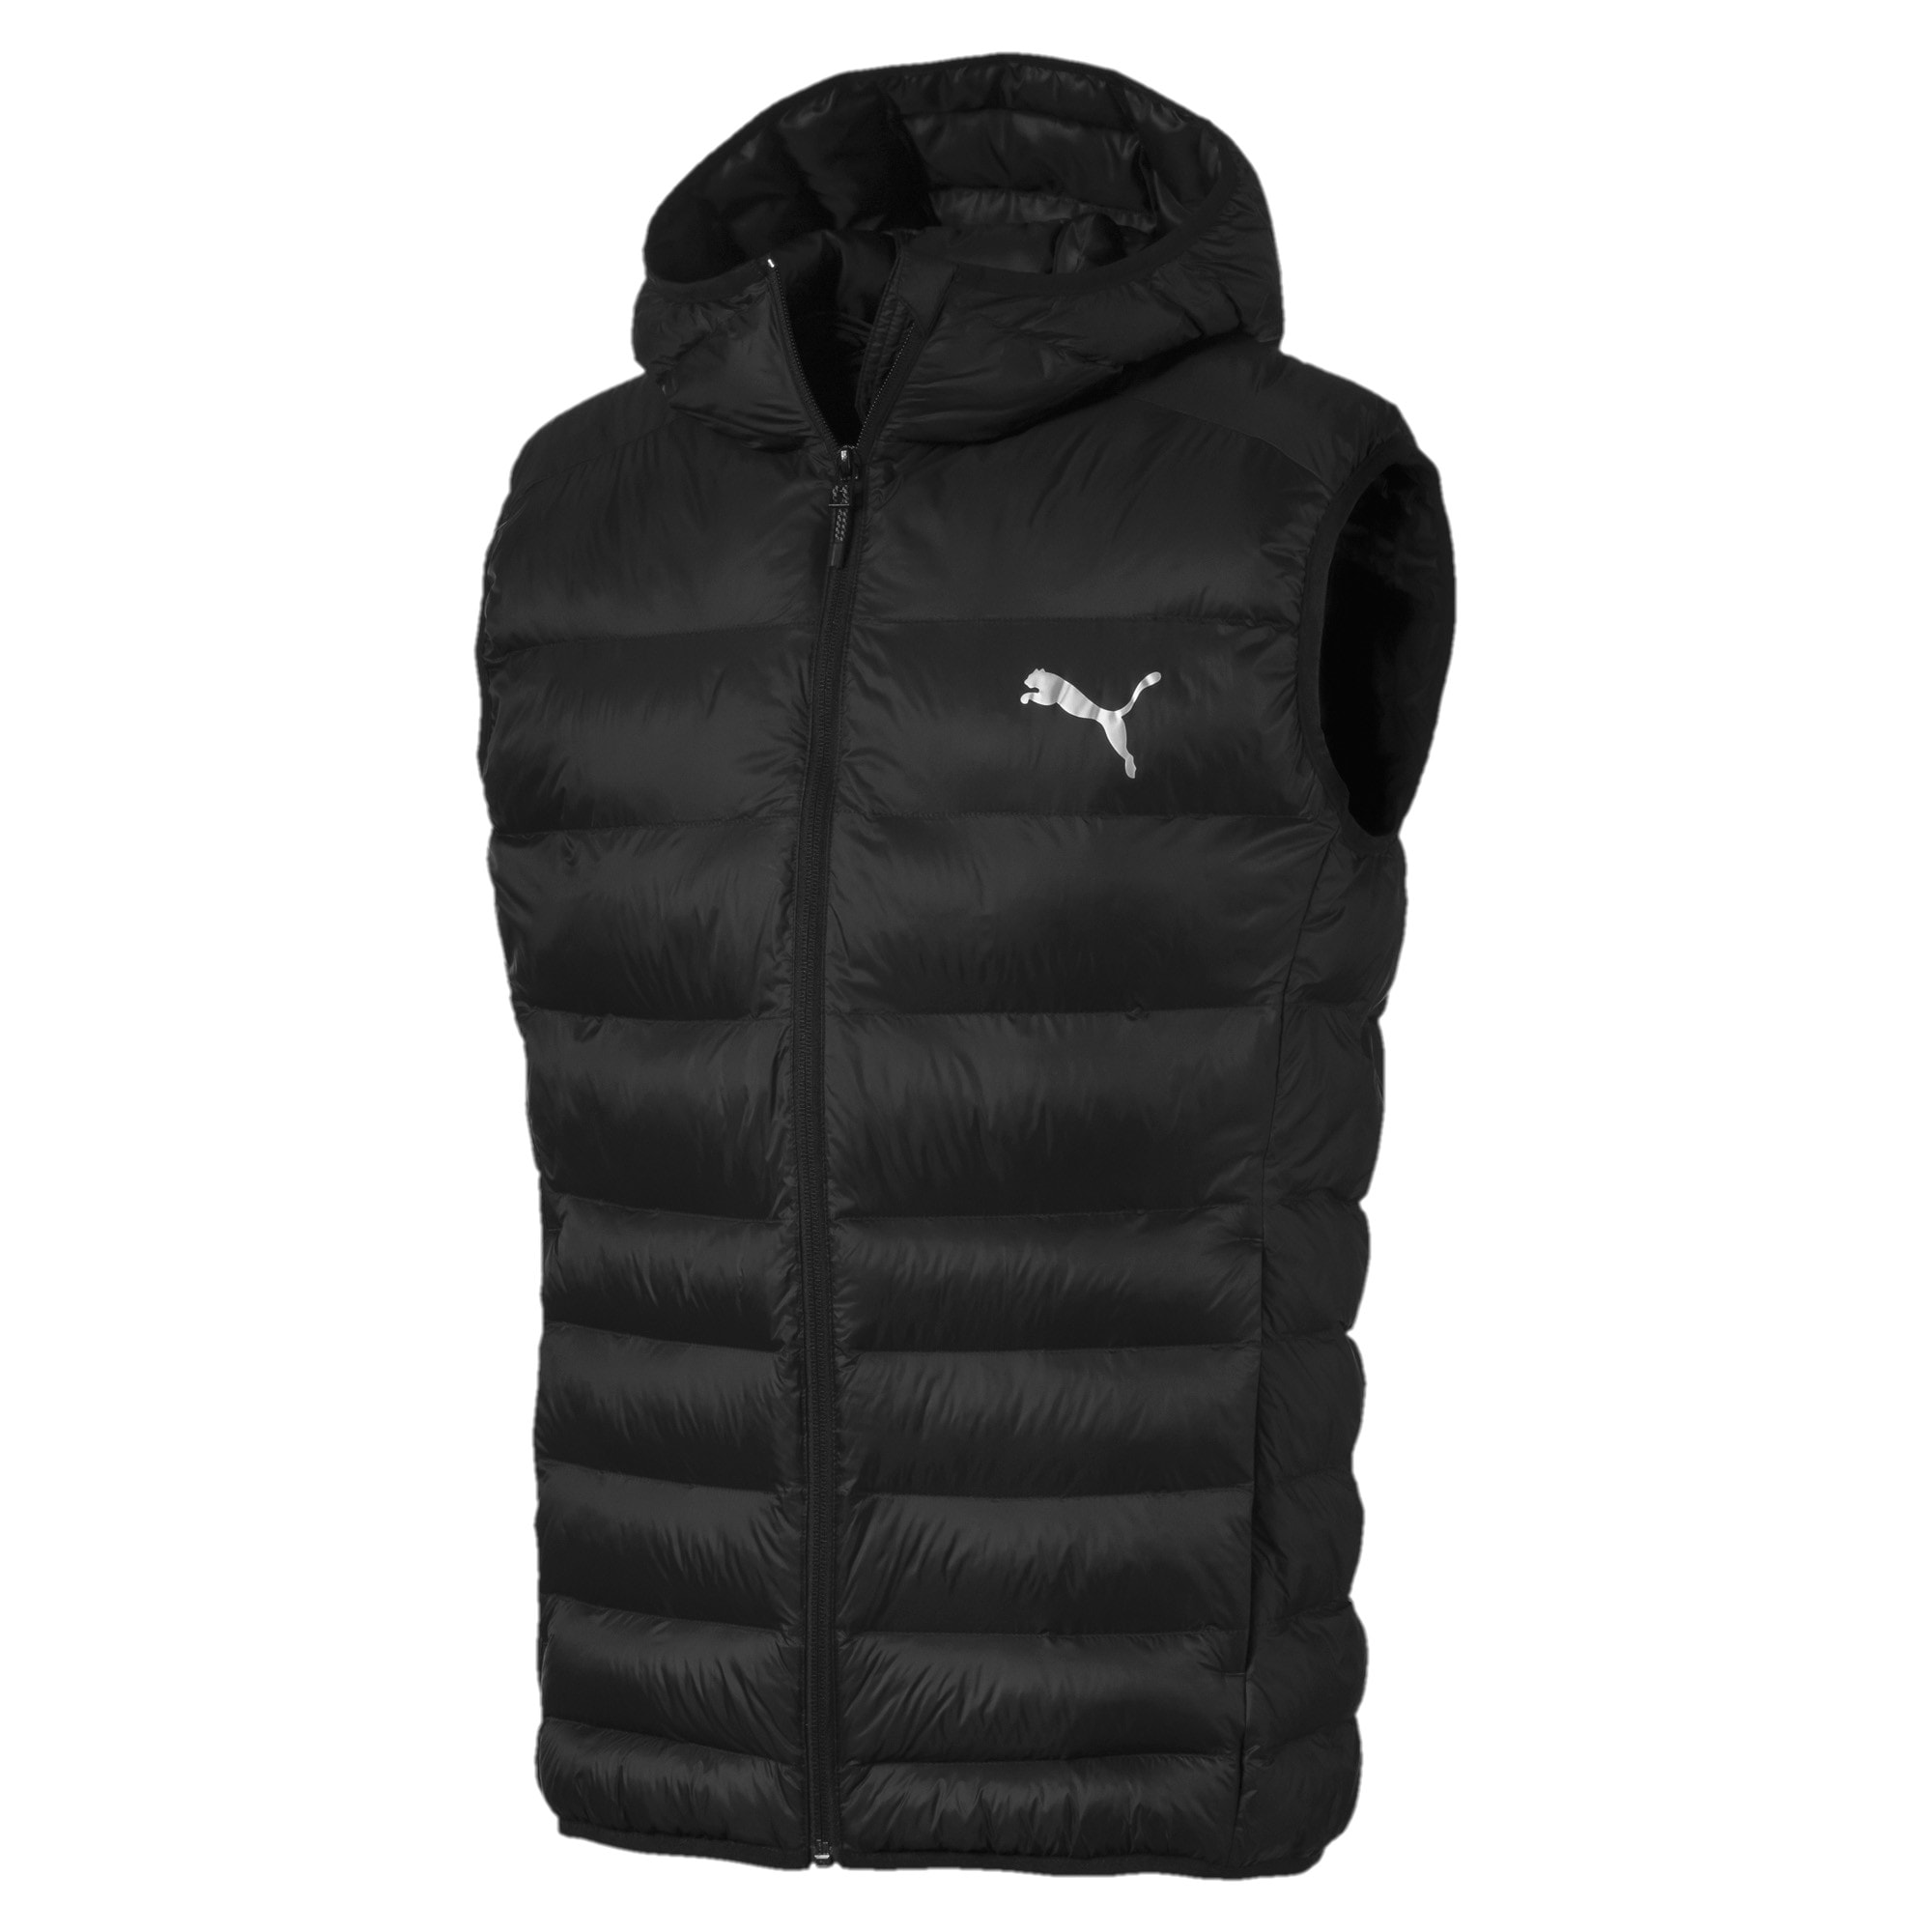 Thumbnail 4 of Ultralight Sleeveless Hooded Men's Vest, Puma Black, medium